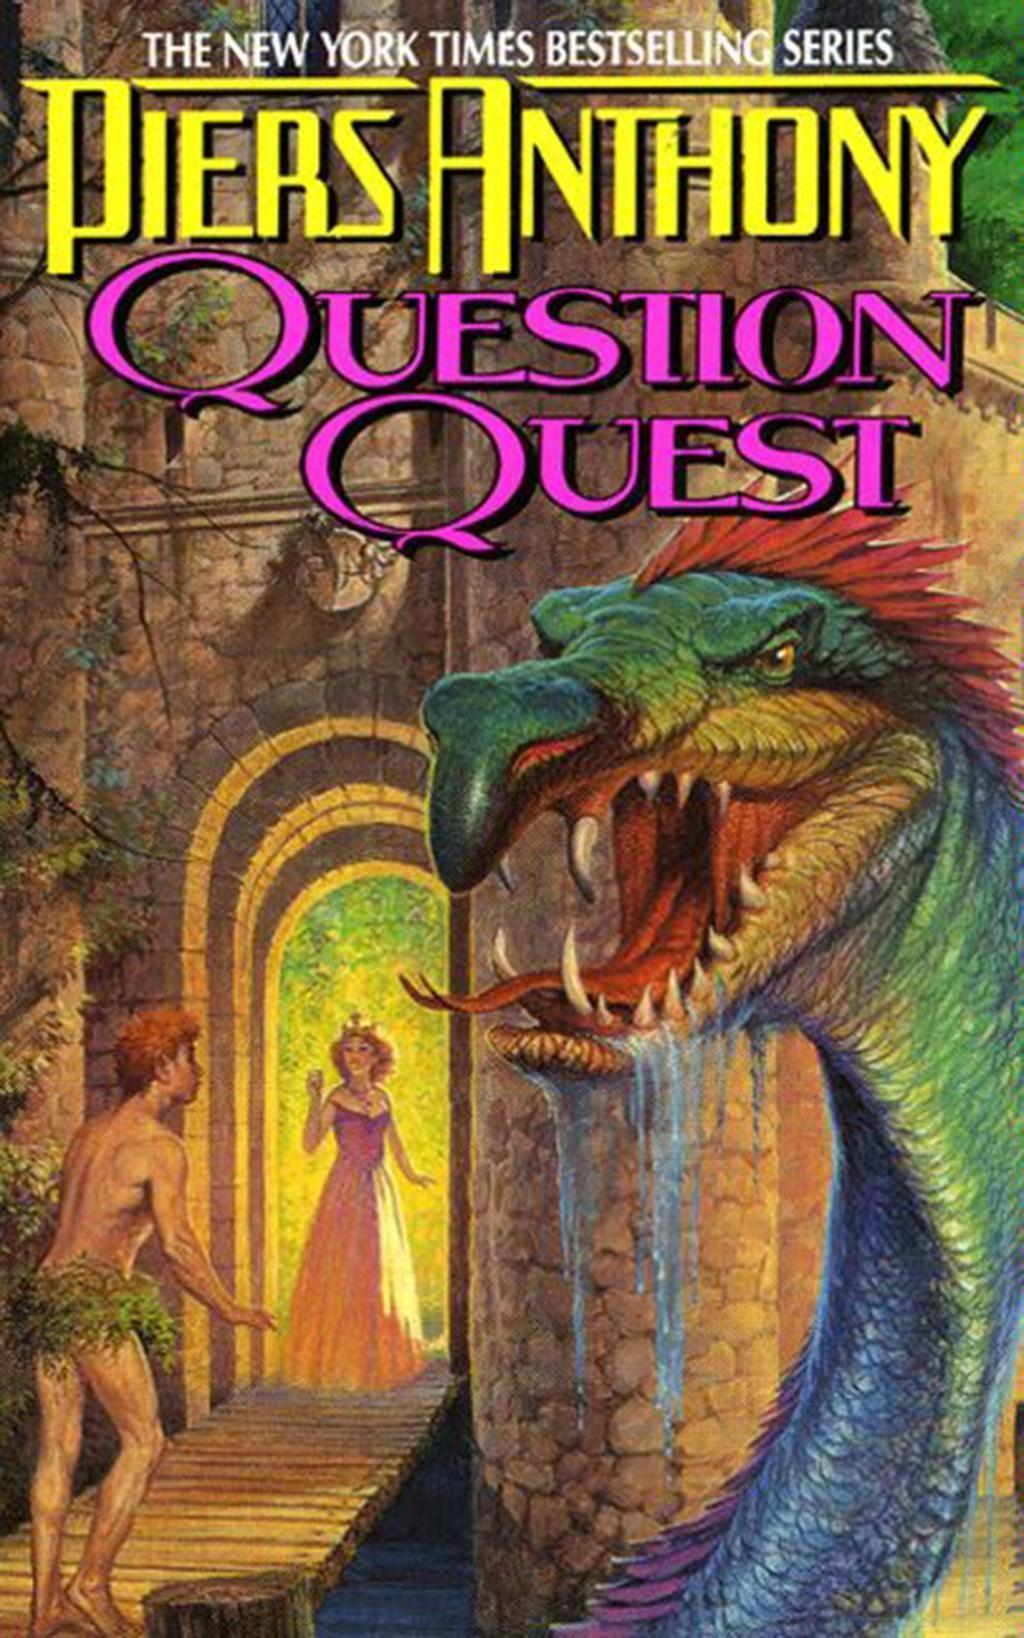 Xanth 14: Question Quest